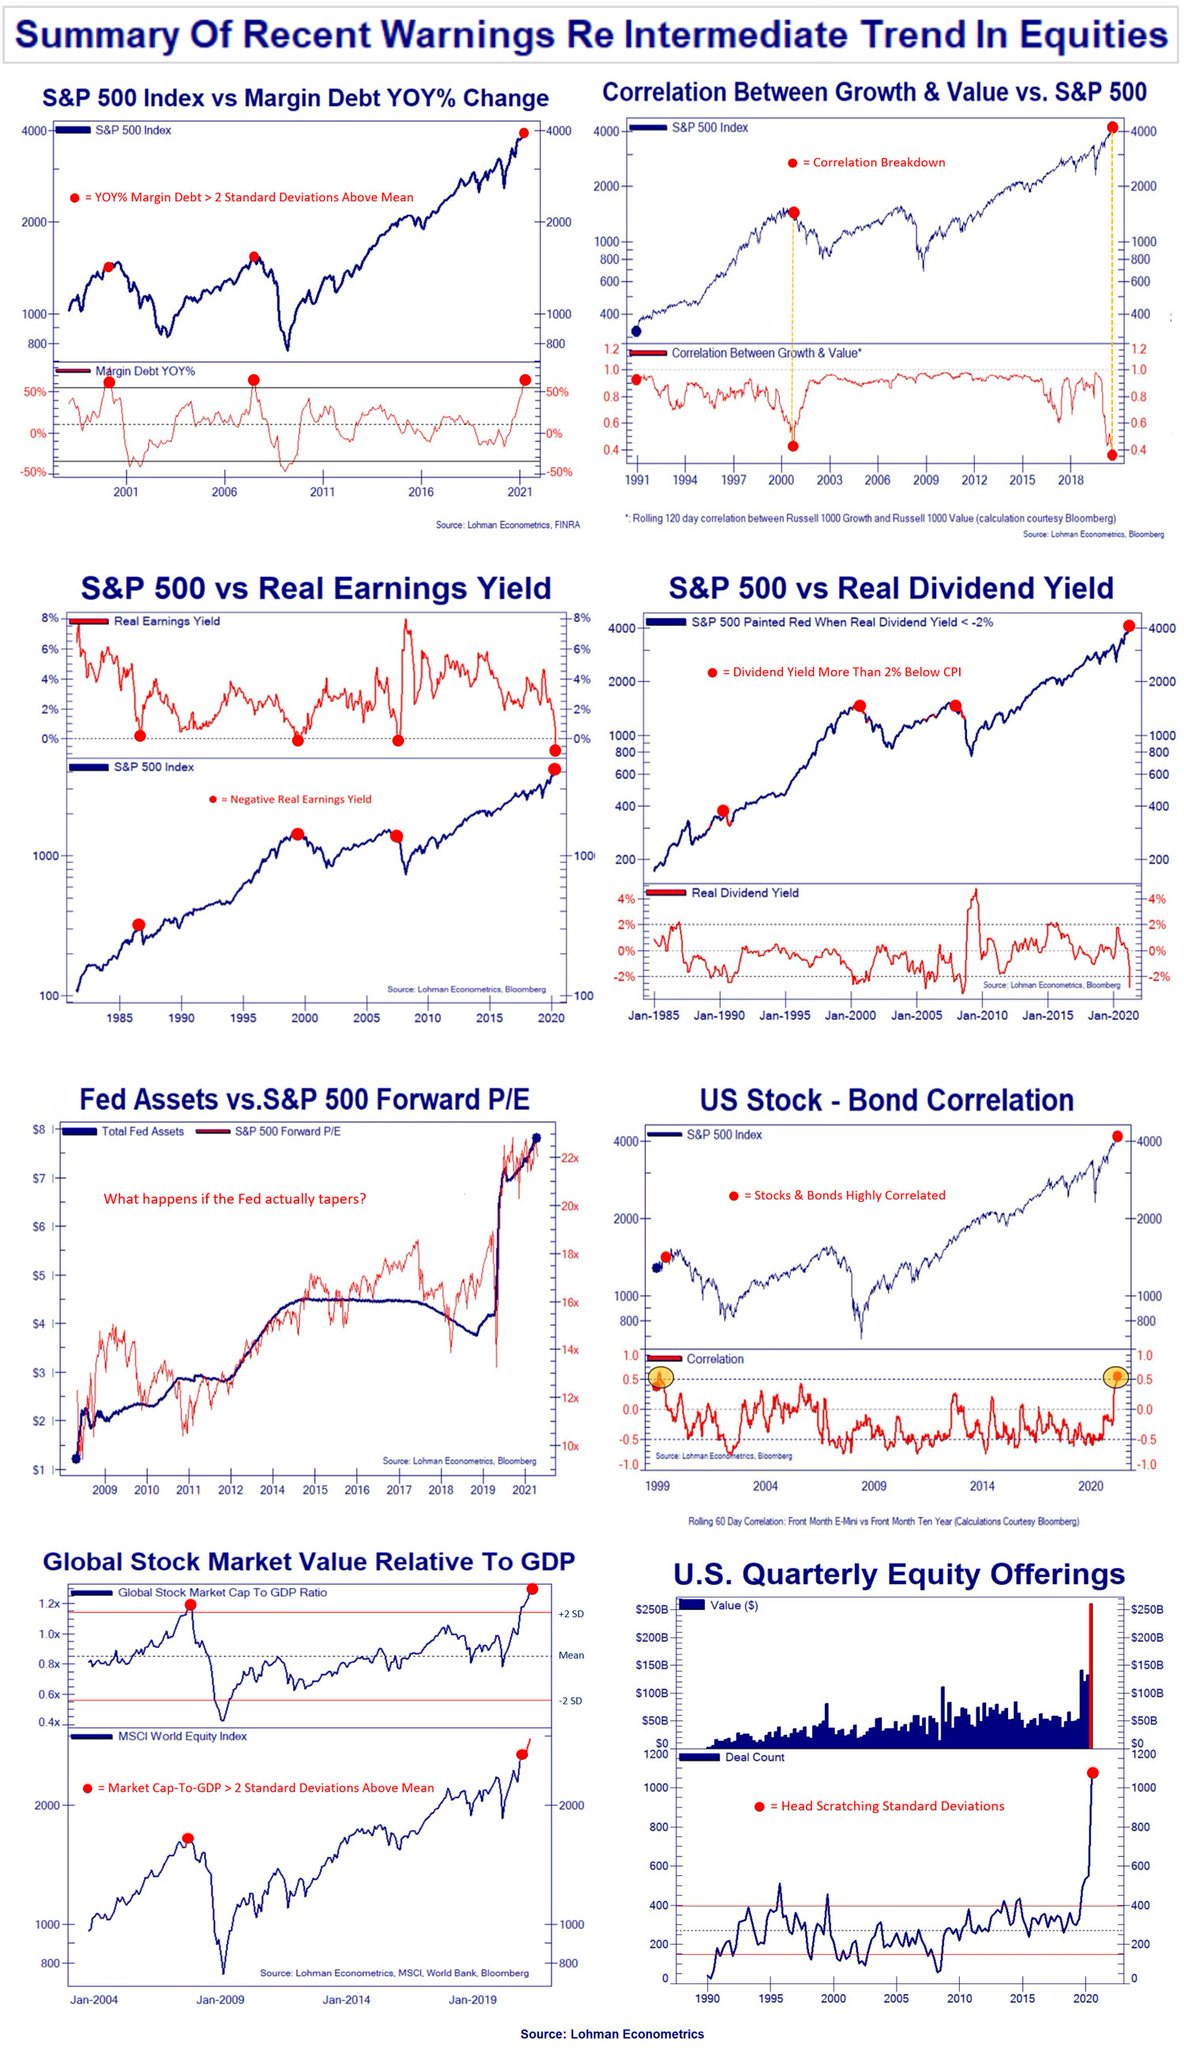 A recap of some of the warnings from the equity market